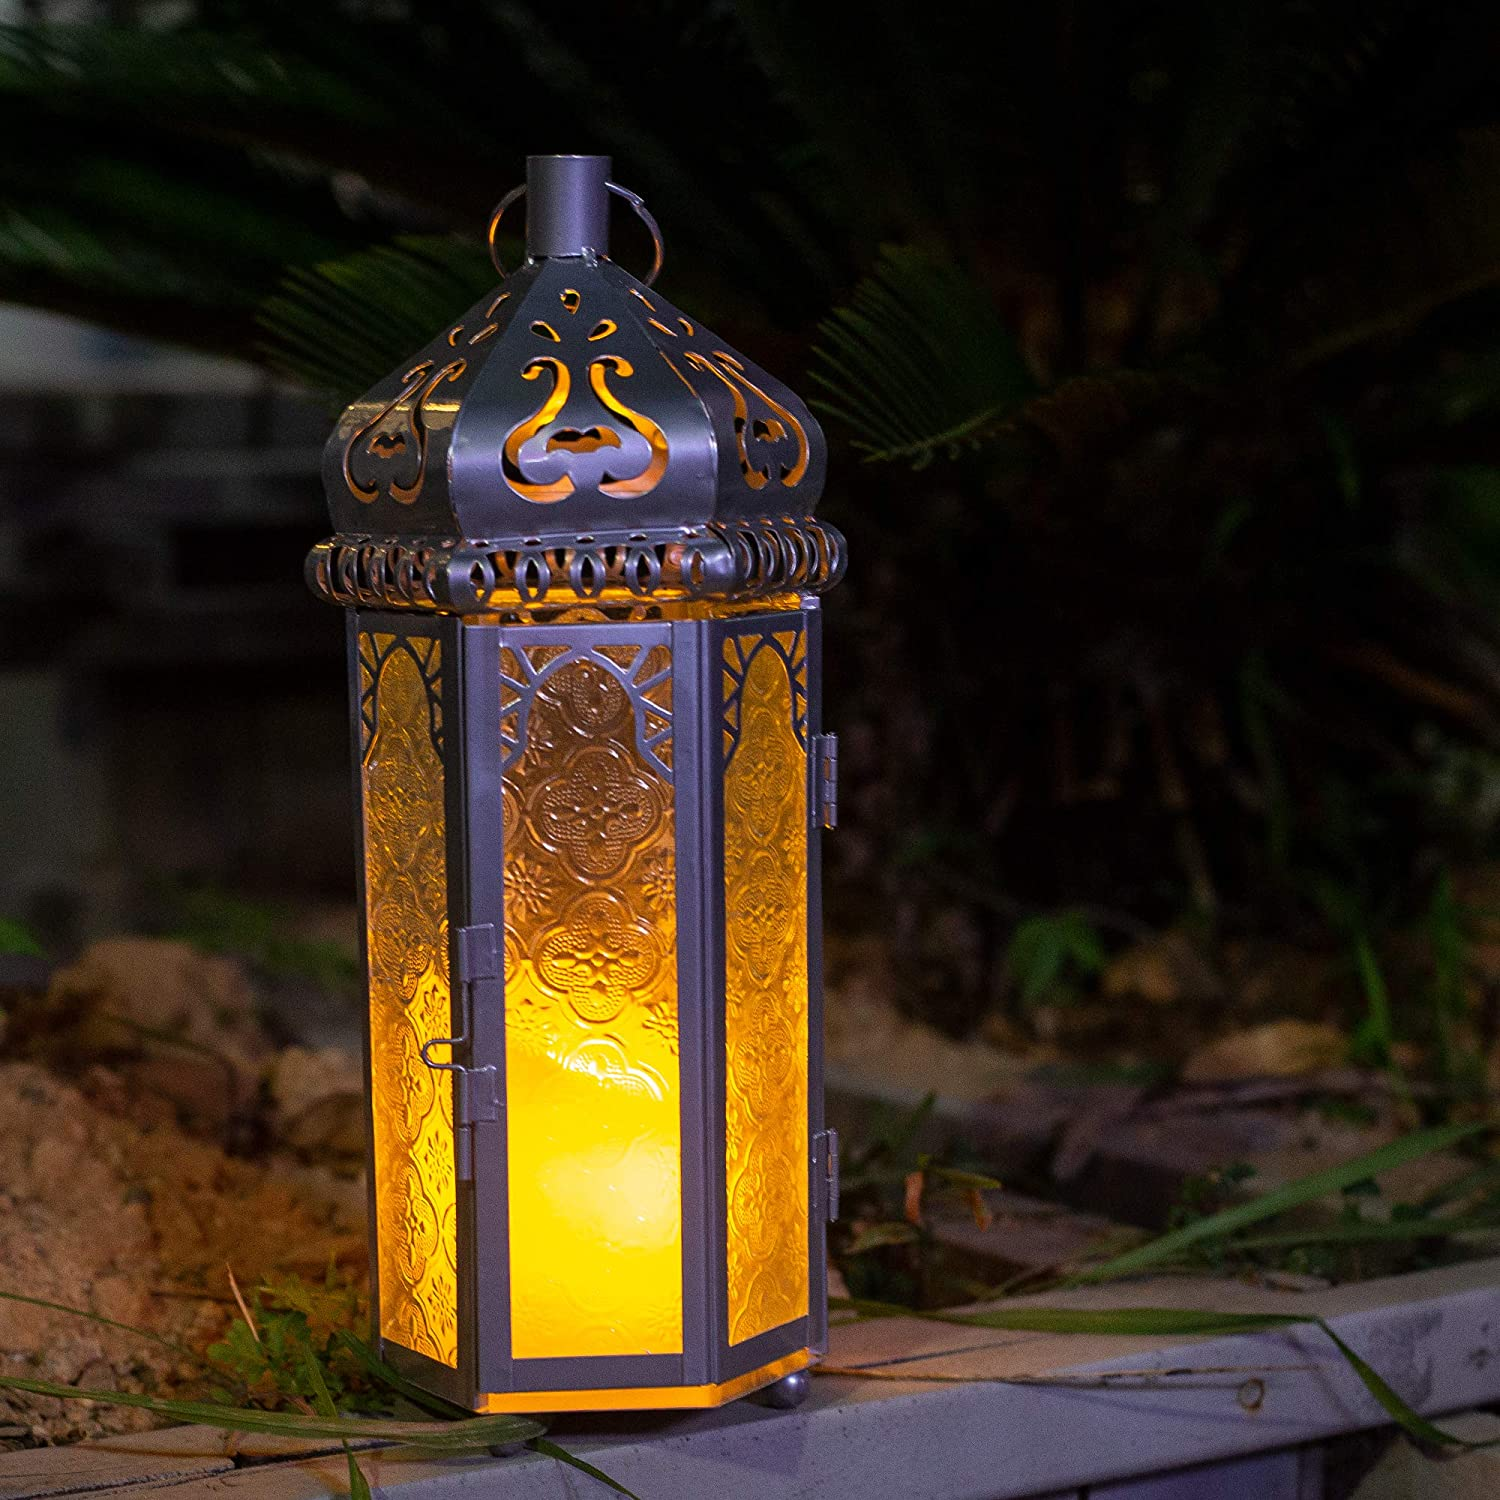 Moroccan Hanging Candle Lantern, Moroccan Home Decor Candle Holder, Wedding&Christmas Outdoor Table Lantern (Silver Color with Transfer Glass)